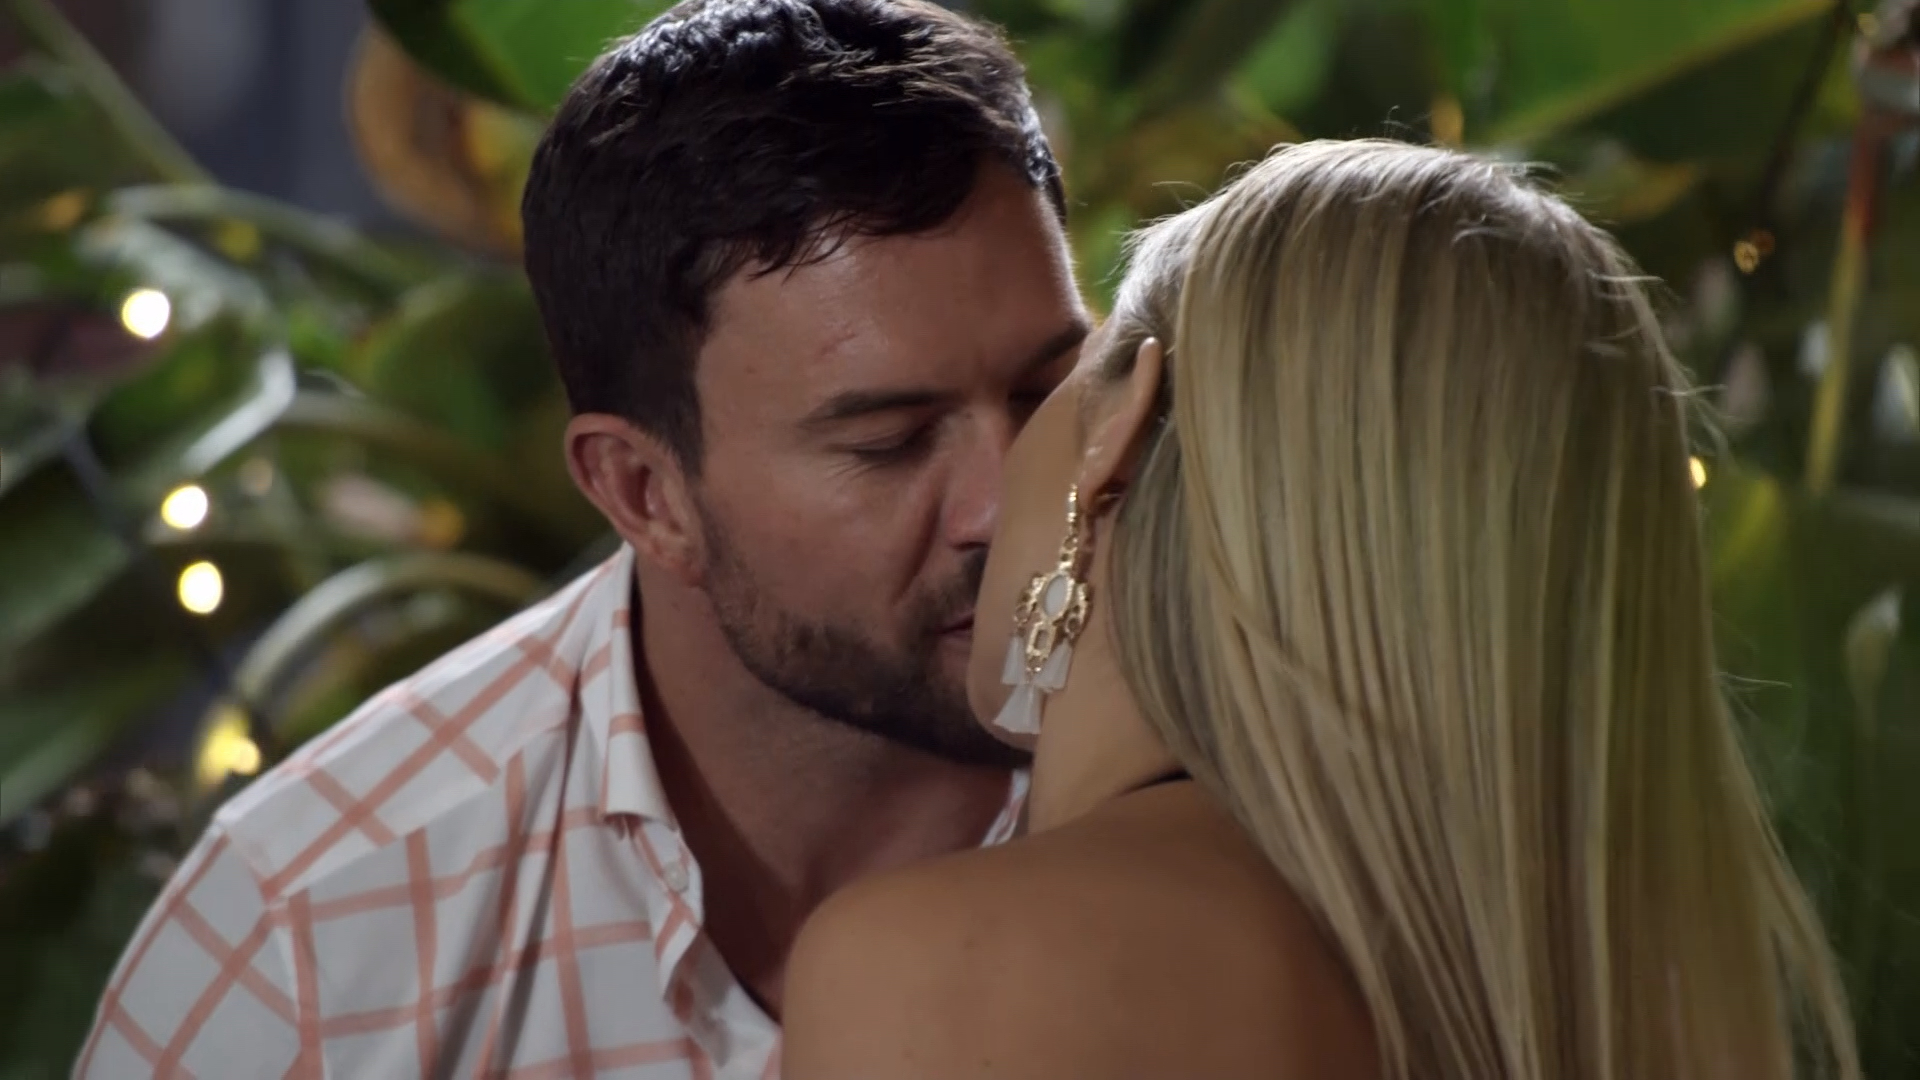 Jess and Dan decide to 'come clean' about their affair